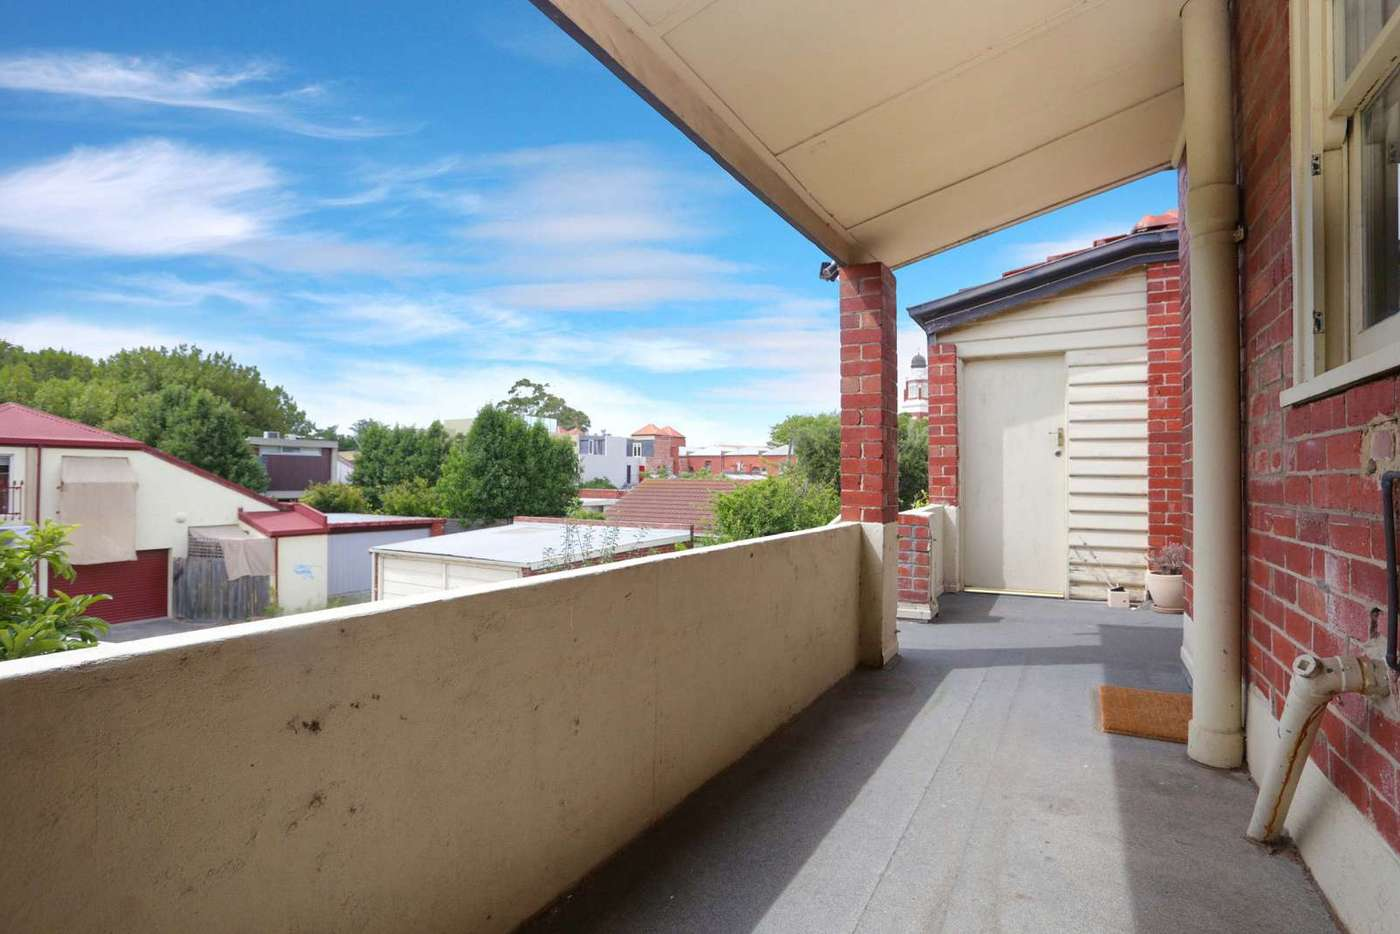 Seventh view of Homely apartment listing, 4/123 Ruskin Street, Elwood VIC 3184